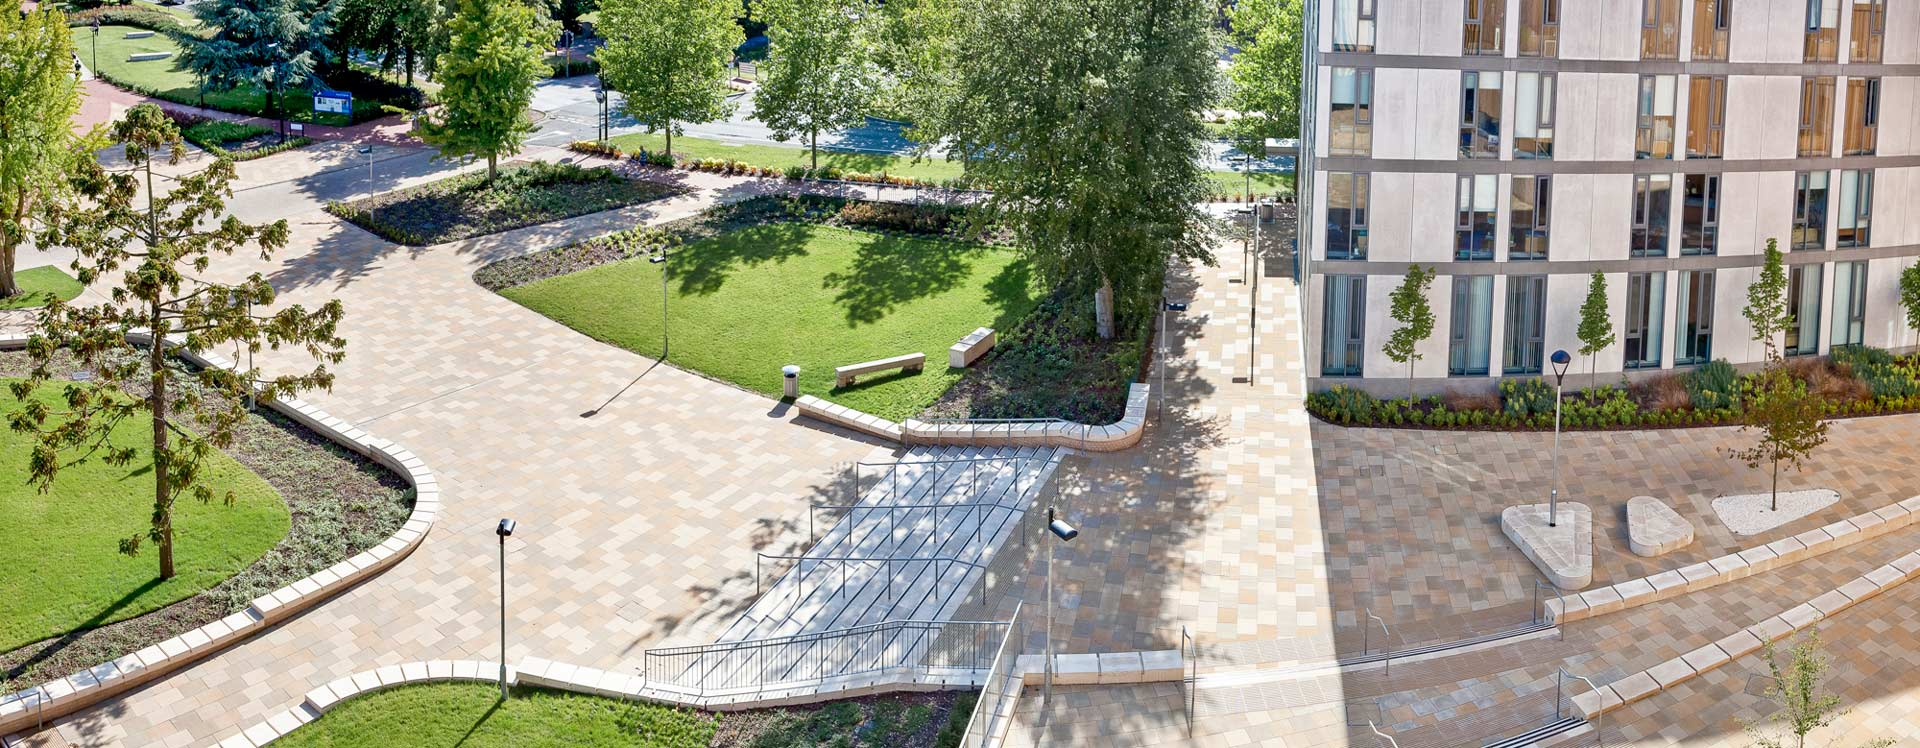 University of southampton campus landscape architecture for Garden design university